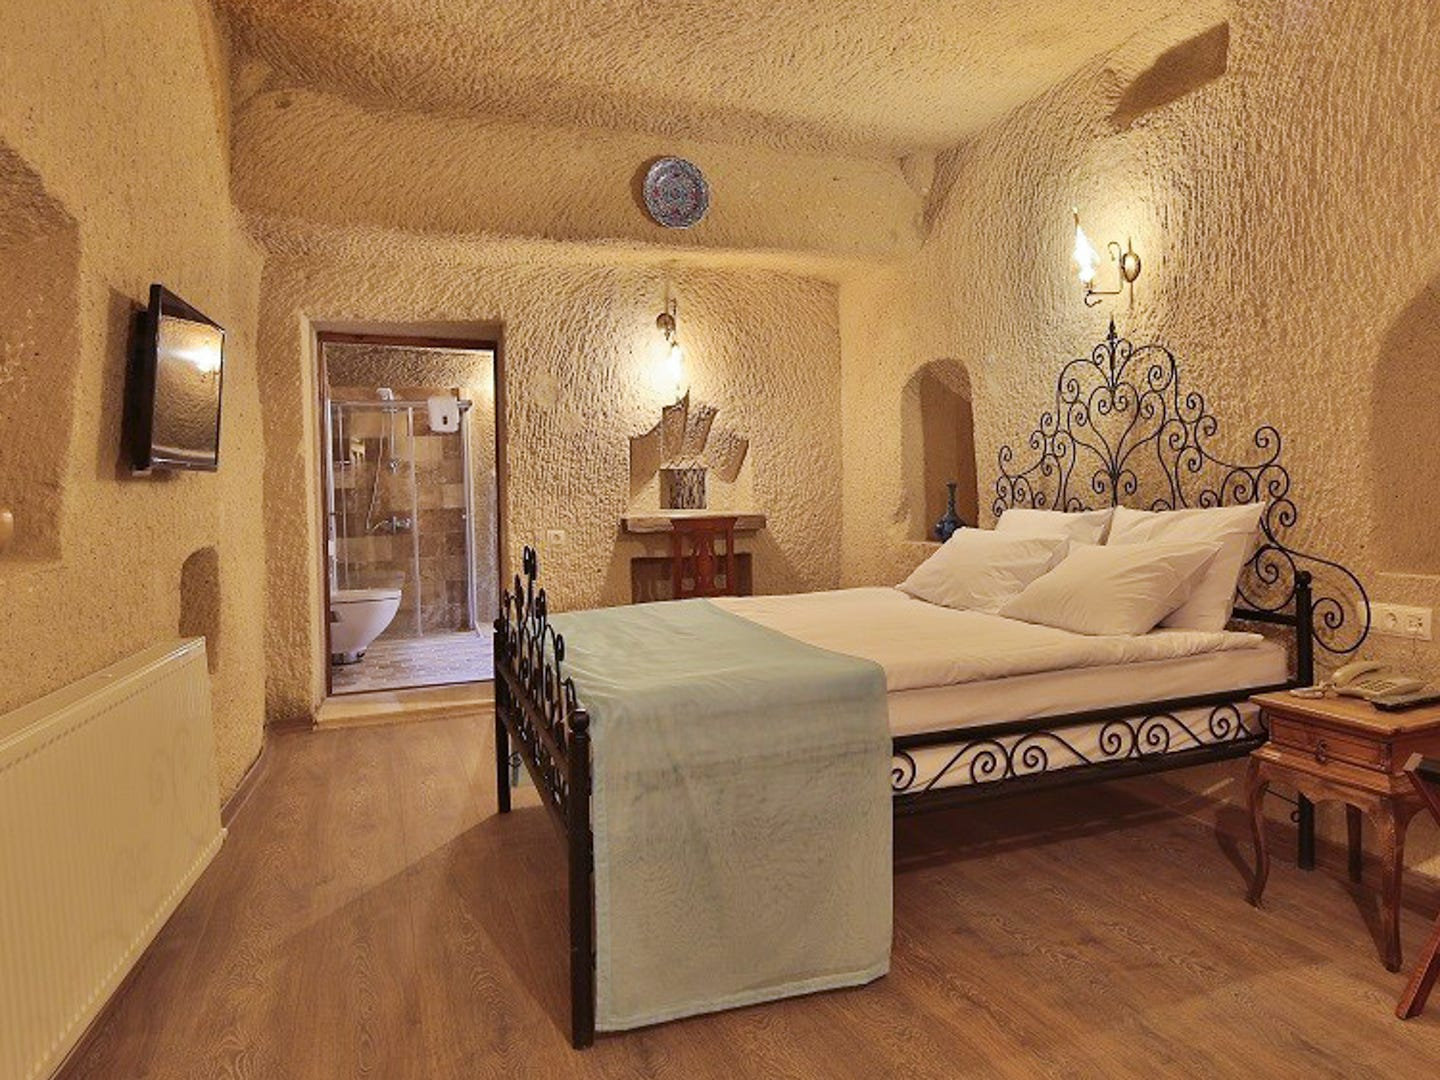 Jacob's Cave Suites, from $99 per night. Cappadocia, Turkey, is known for its otherworldly hot air balloon flights, but it also has an incredible underground labyrinth of cities built right into the rocky landscape. Cave hotels are a novelty, and Jacob's is one that lets you sleep in the caves. It's also received a TripAdvisor certificate of excellence. The rooms are arched and come equipped with en-suite Turkish bathrooms for total privacy and relaxation. When you're ready to resurface and explore the UNESCO Natural Heritage Site, visit the deep, colorful valleys, along with the rock churches, castles and monasteries.